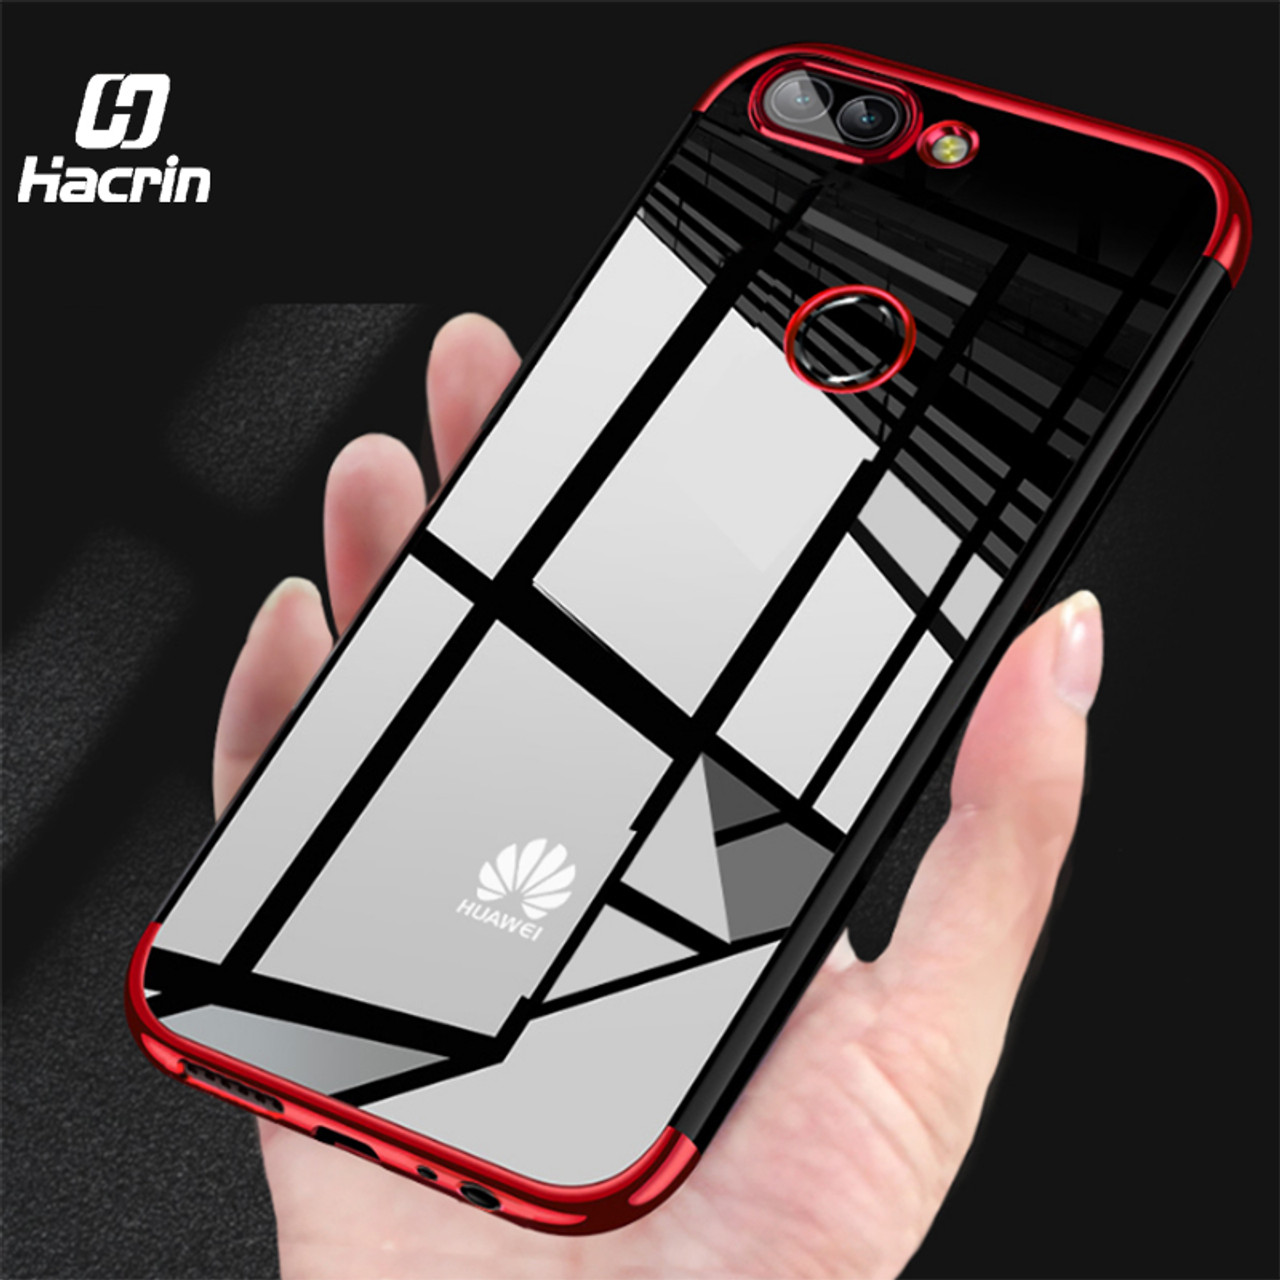 best service 4edad a0f17 for Huawei P Smart Case Transparent Plating Silicone Case For Huawei P  Smart Cover Soft TPU Protective Cover Bumper Ultra Slim